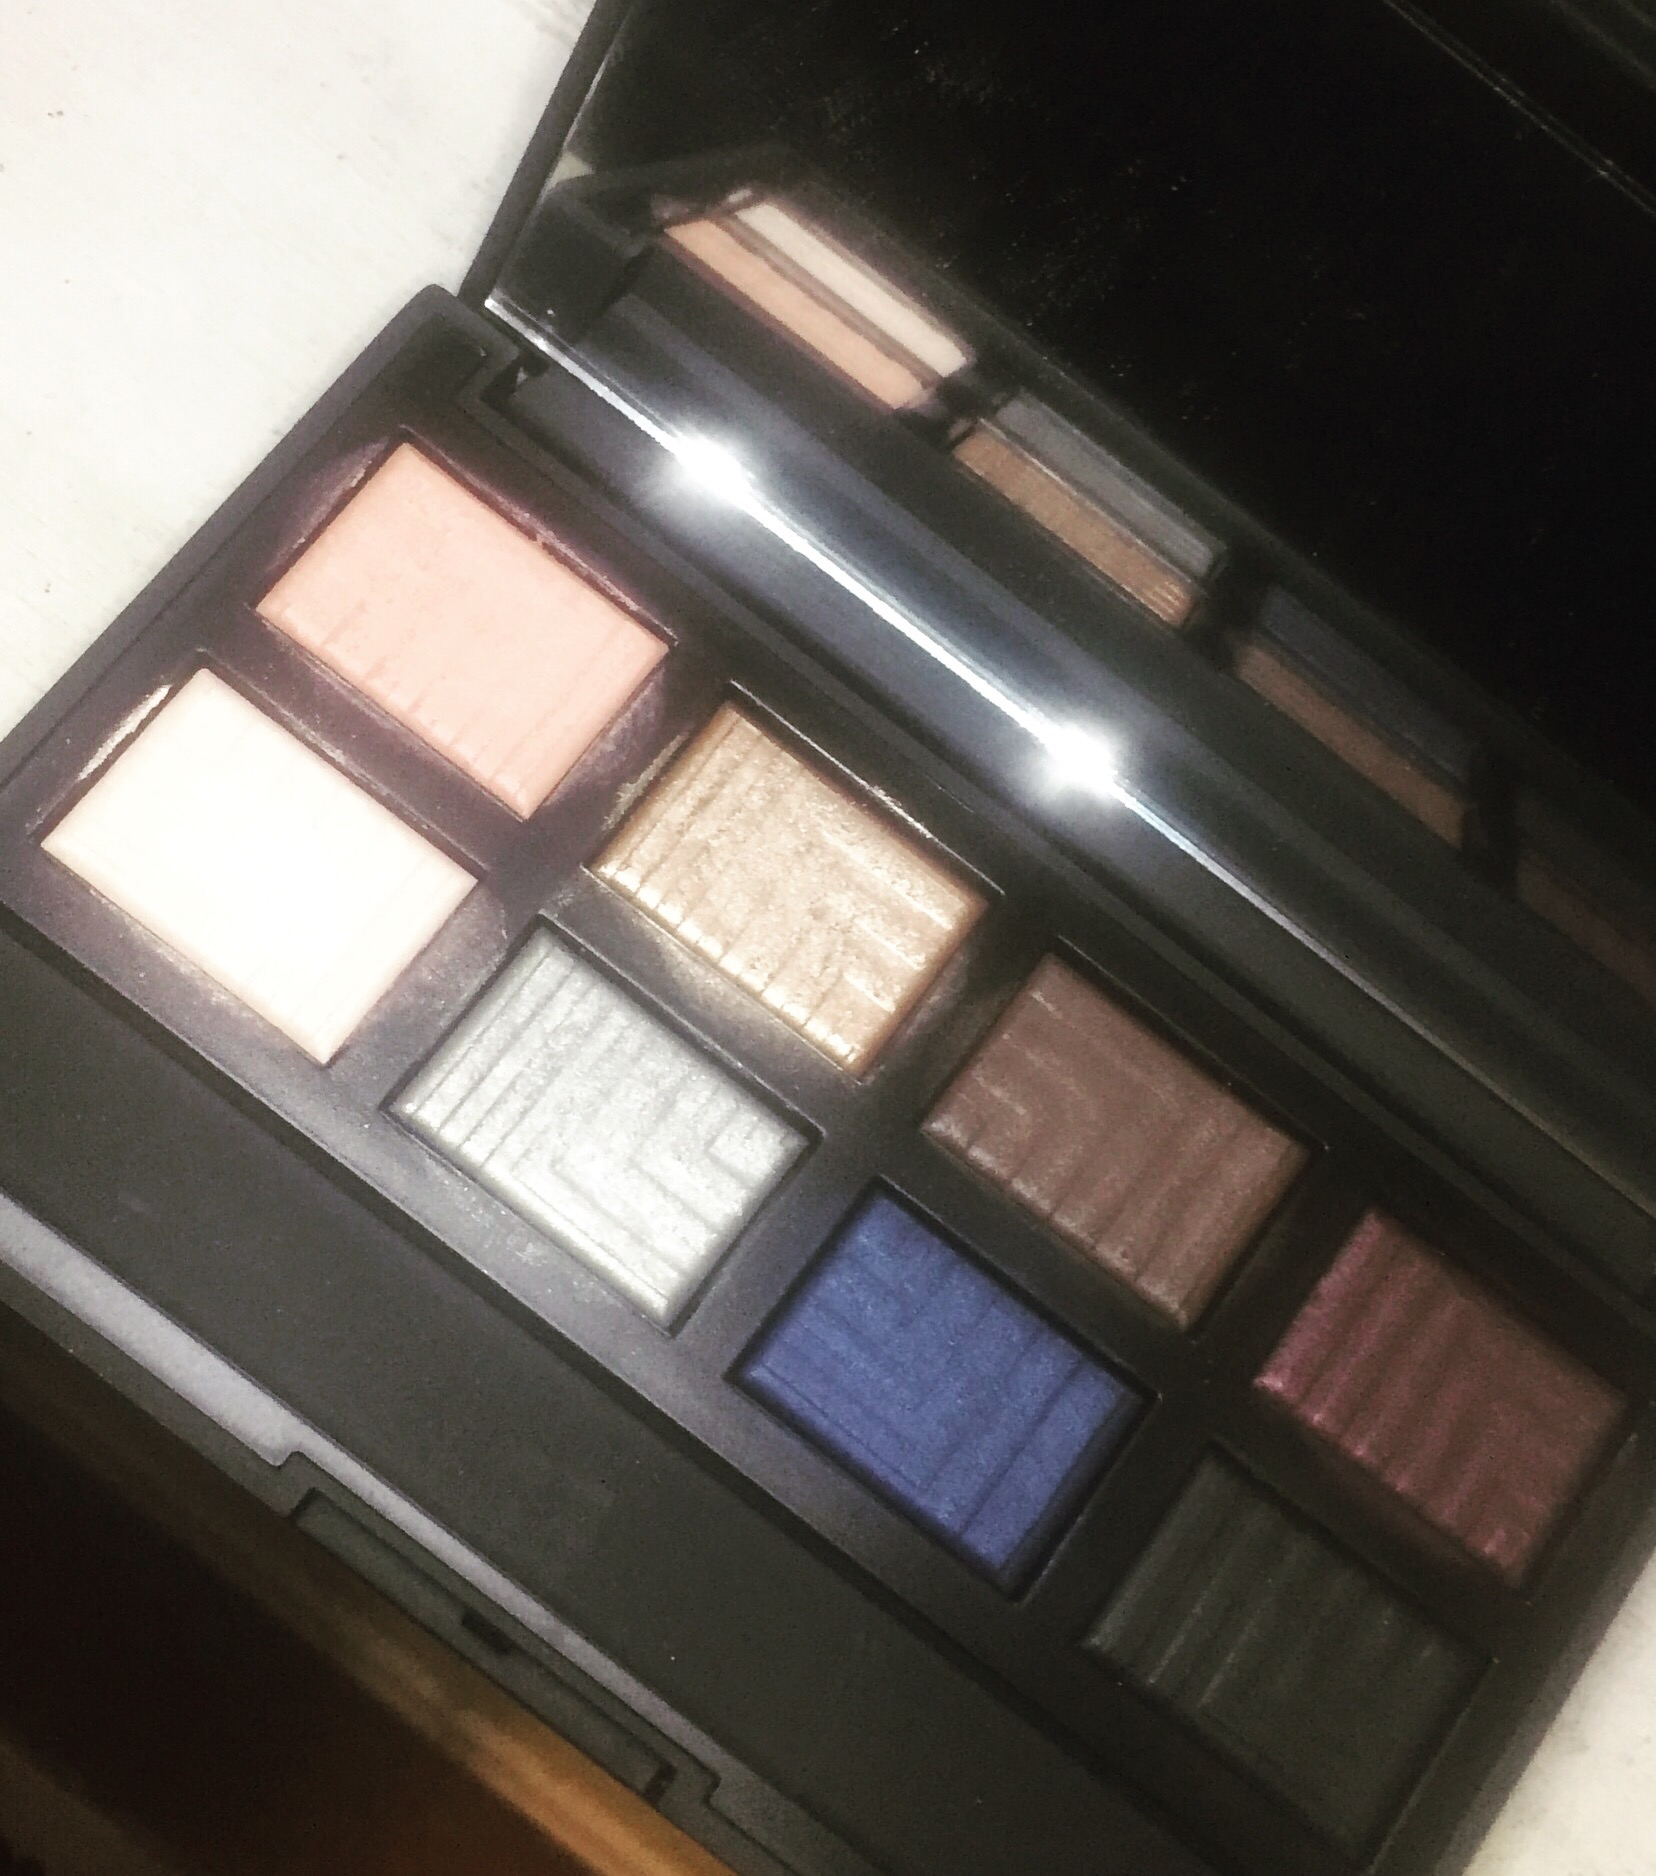 Nars Narsissit Dual Intensity Eyeshadow Palette